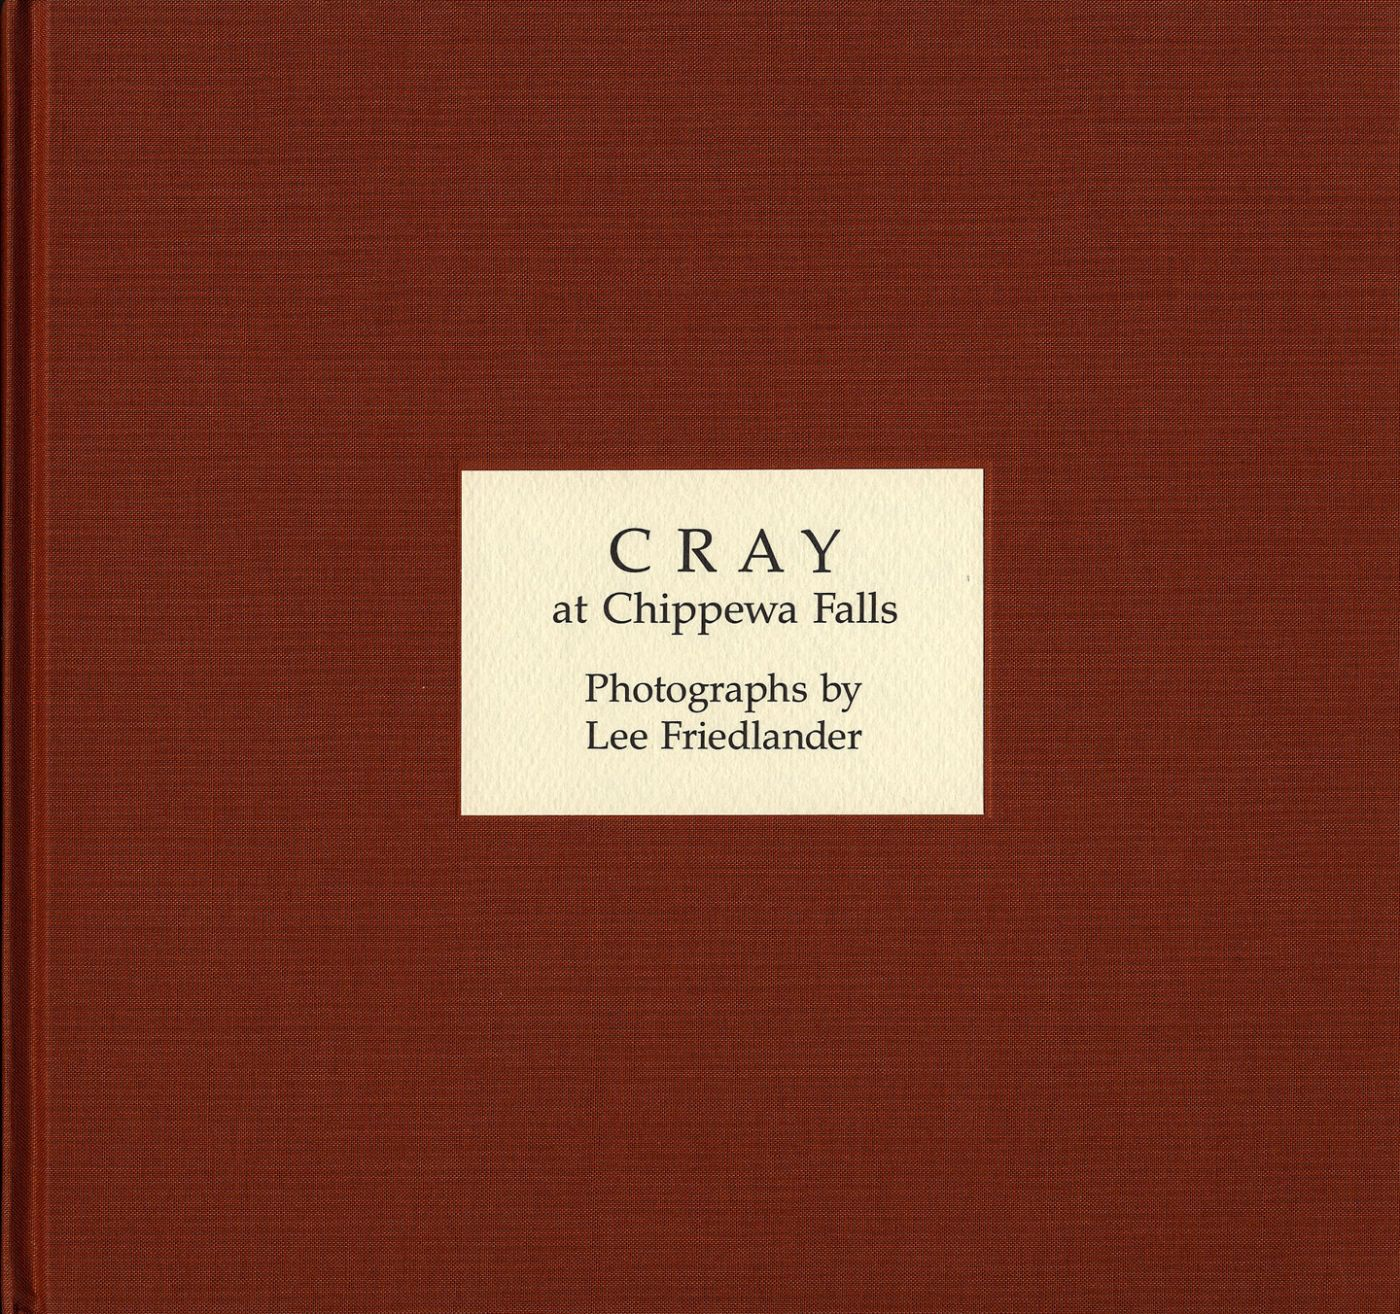 Lee Friedlander: Cray at Chippewa Falls, Limited Edition [SIGNED] and Preview